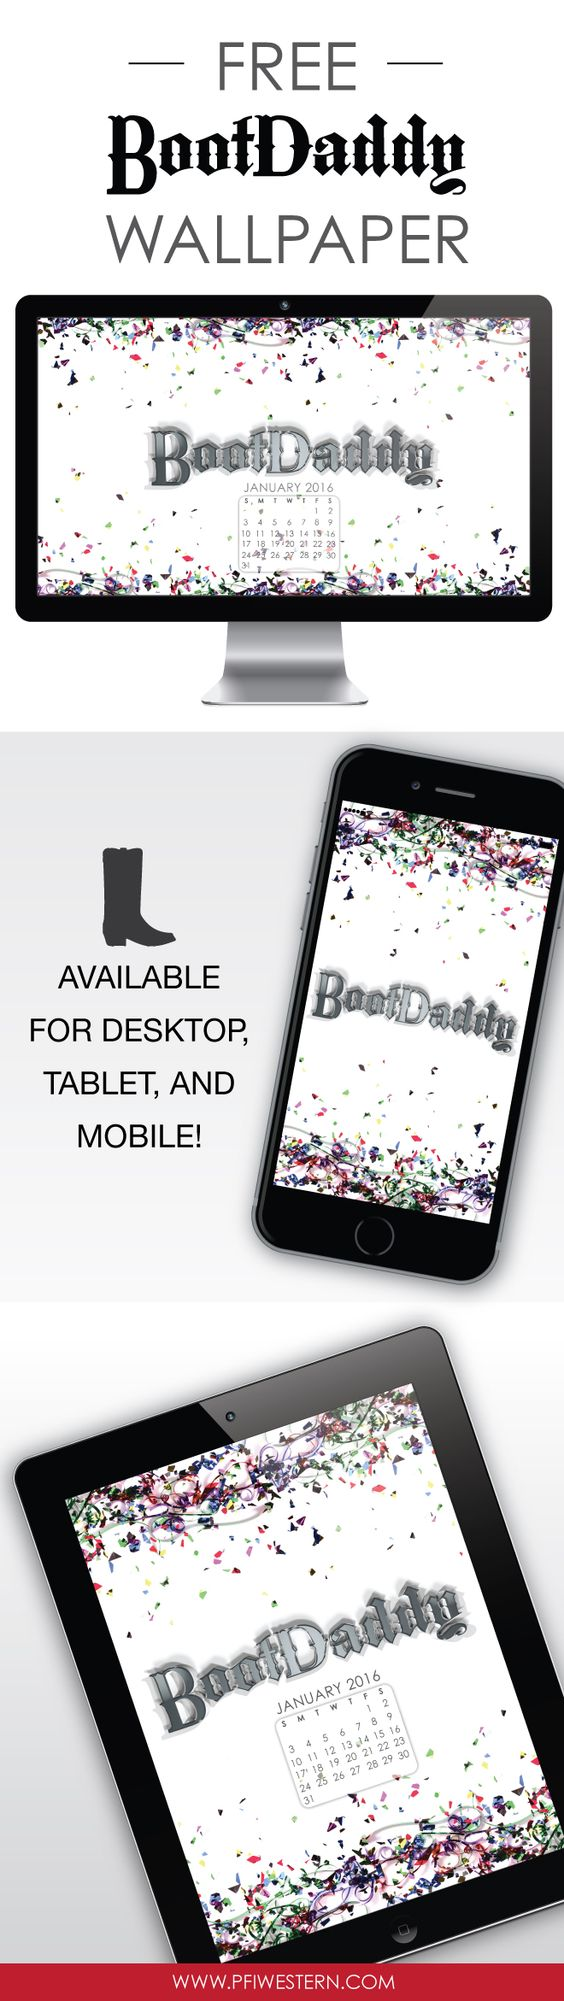 January 2016 Freebie! BootDaddy confetti downloadable desktop, mobile, or tablet wallpaper. Click to download!